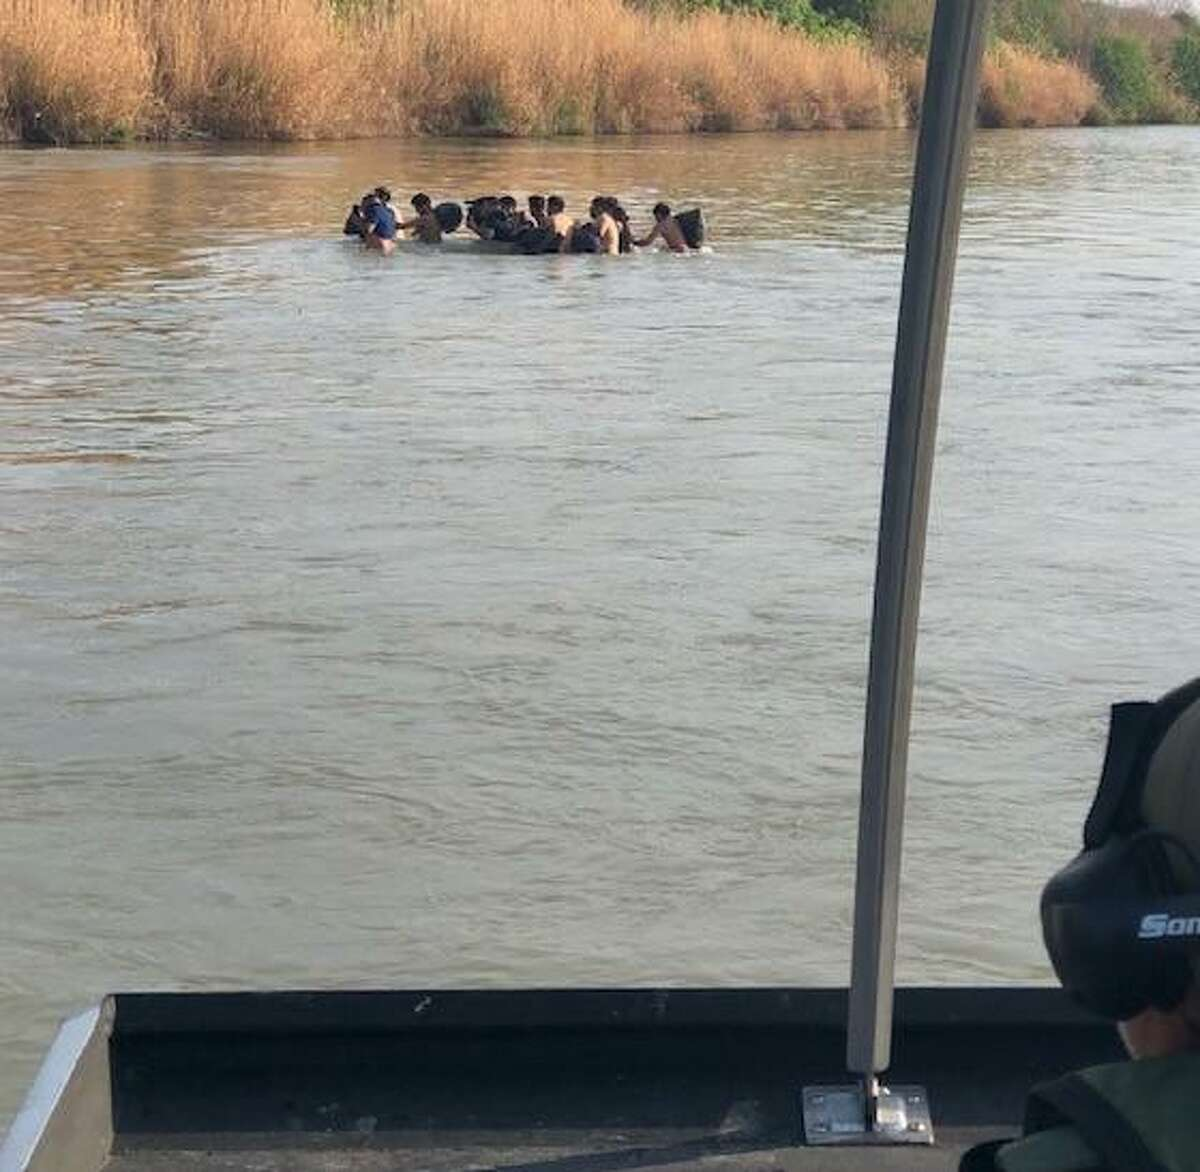 U.S. Border Patrol agents assigned to the marine unit foiled the illegal crossing of 29 individuals at the Rio Grande.